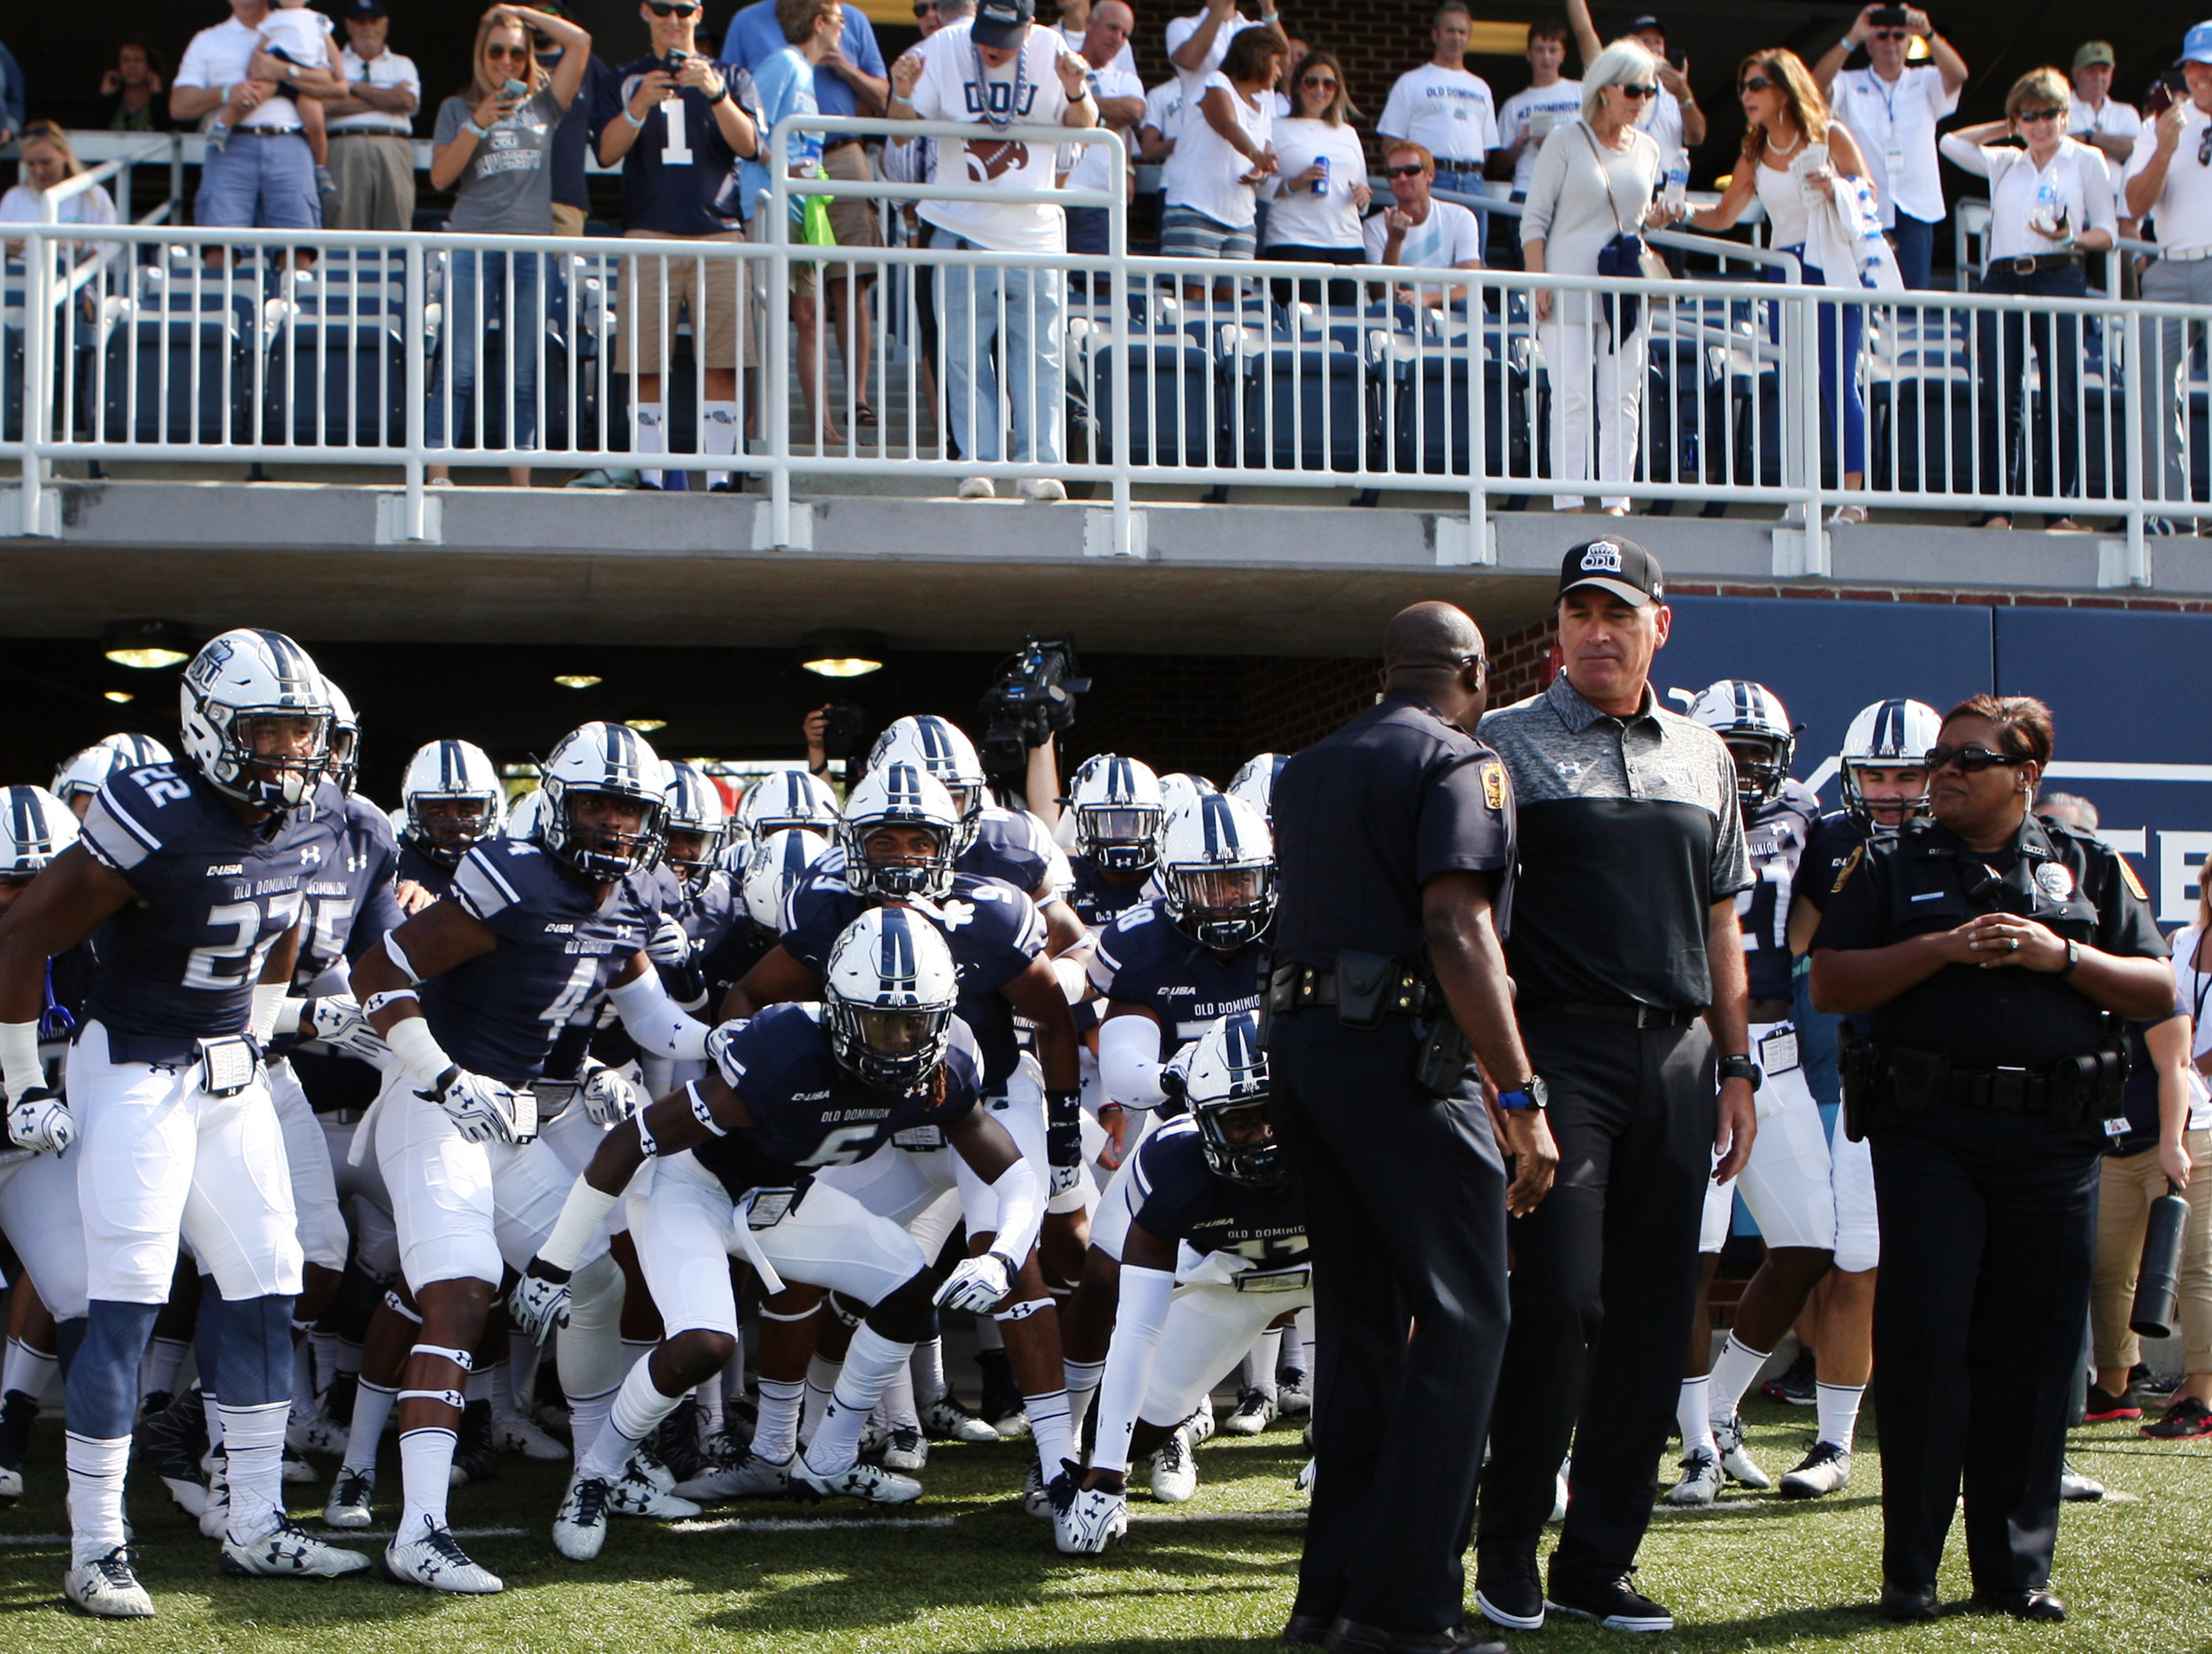 Old DOminion head coach Bobby Wilder and the 2016 Monarchs prepare to take the field for their season opener, Sunday, Sept. 4, 2016 at ODU in Norfolk.   (Jason Hirschfeld | The Virginian-Pilot)